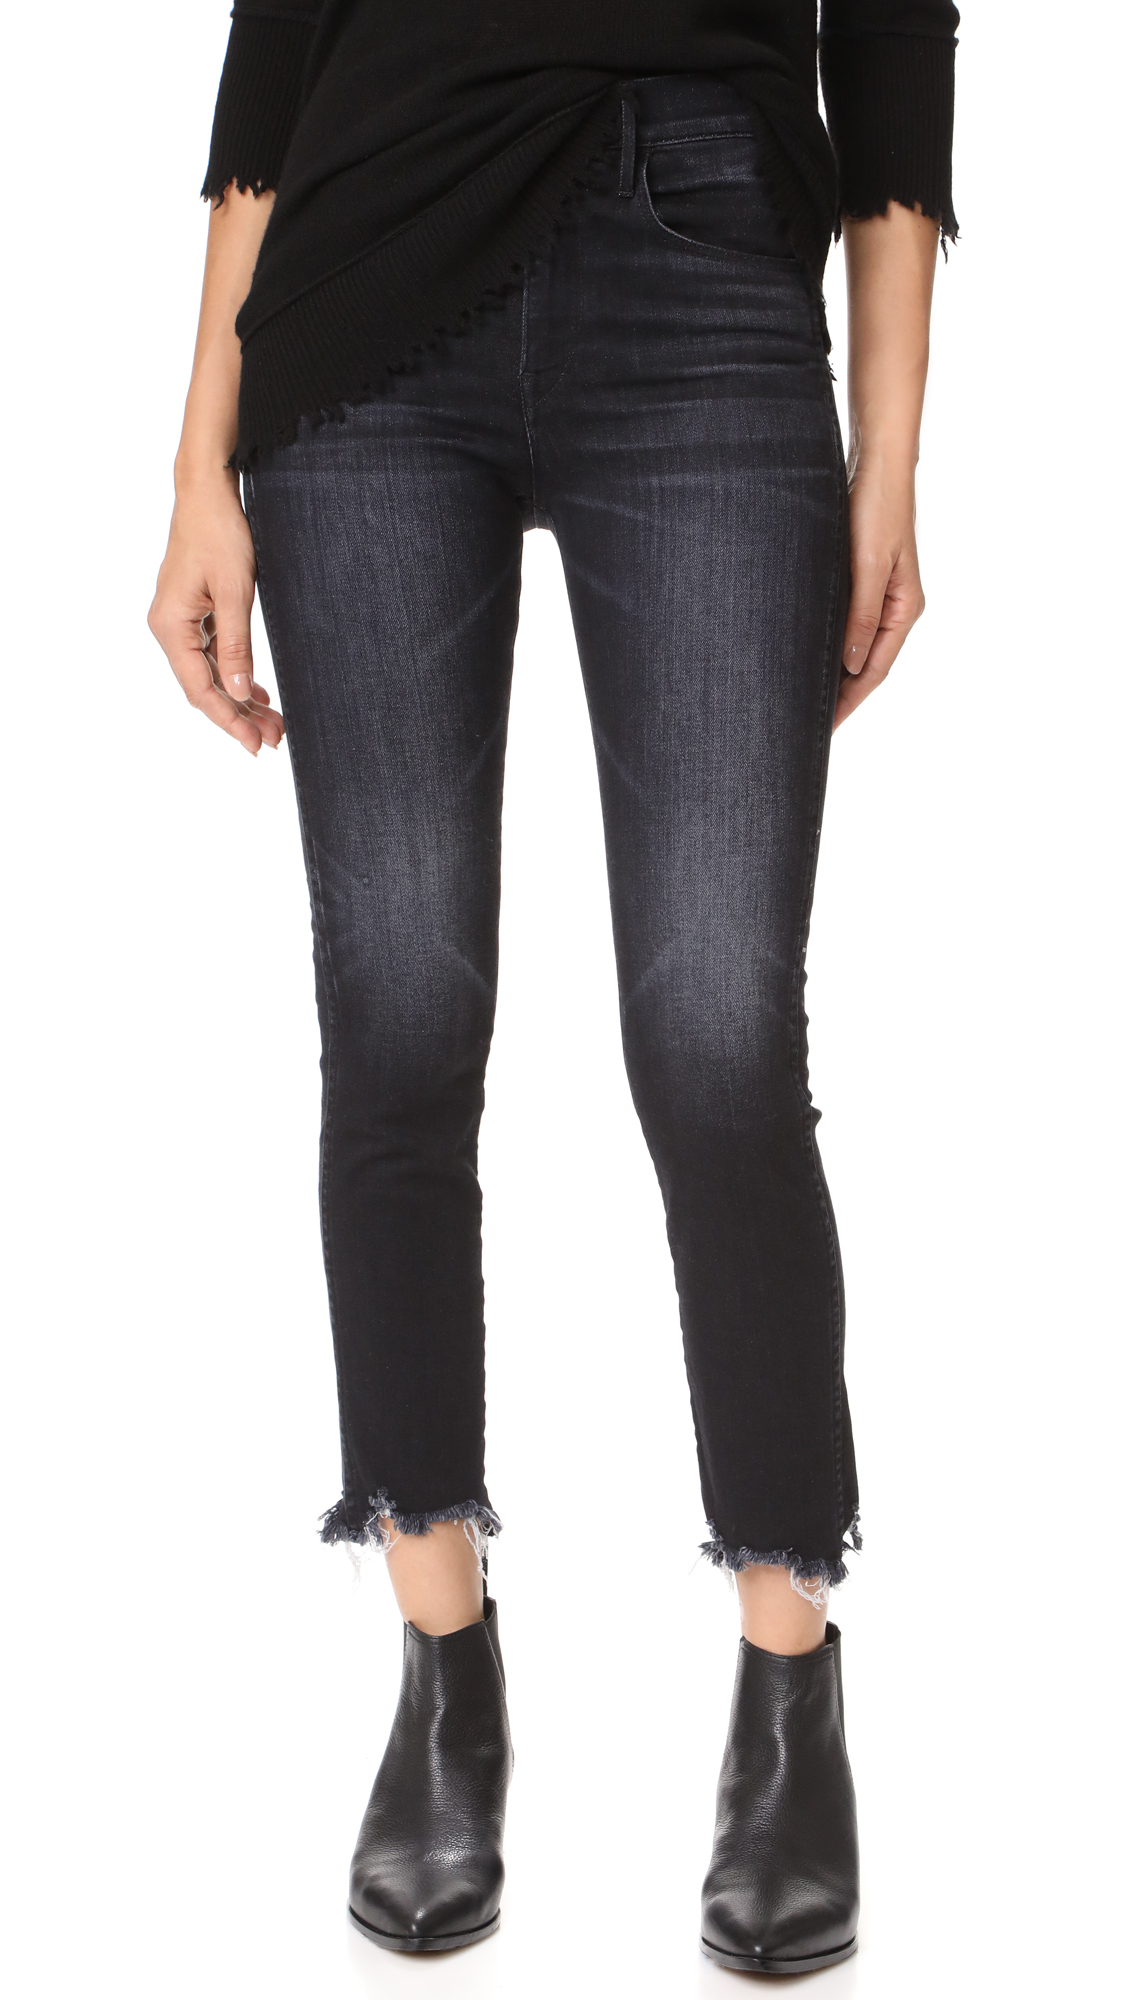 3x1 W3 Straight Authentic Crop Jeans - Shake